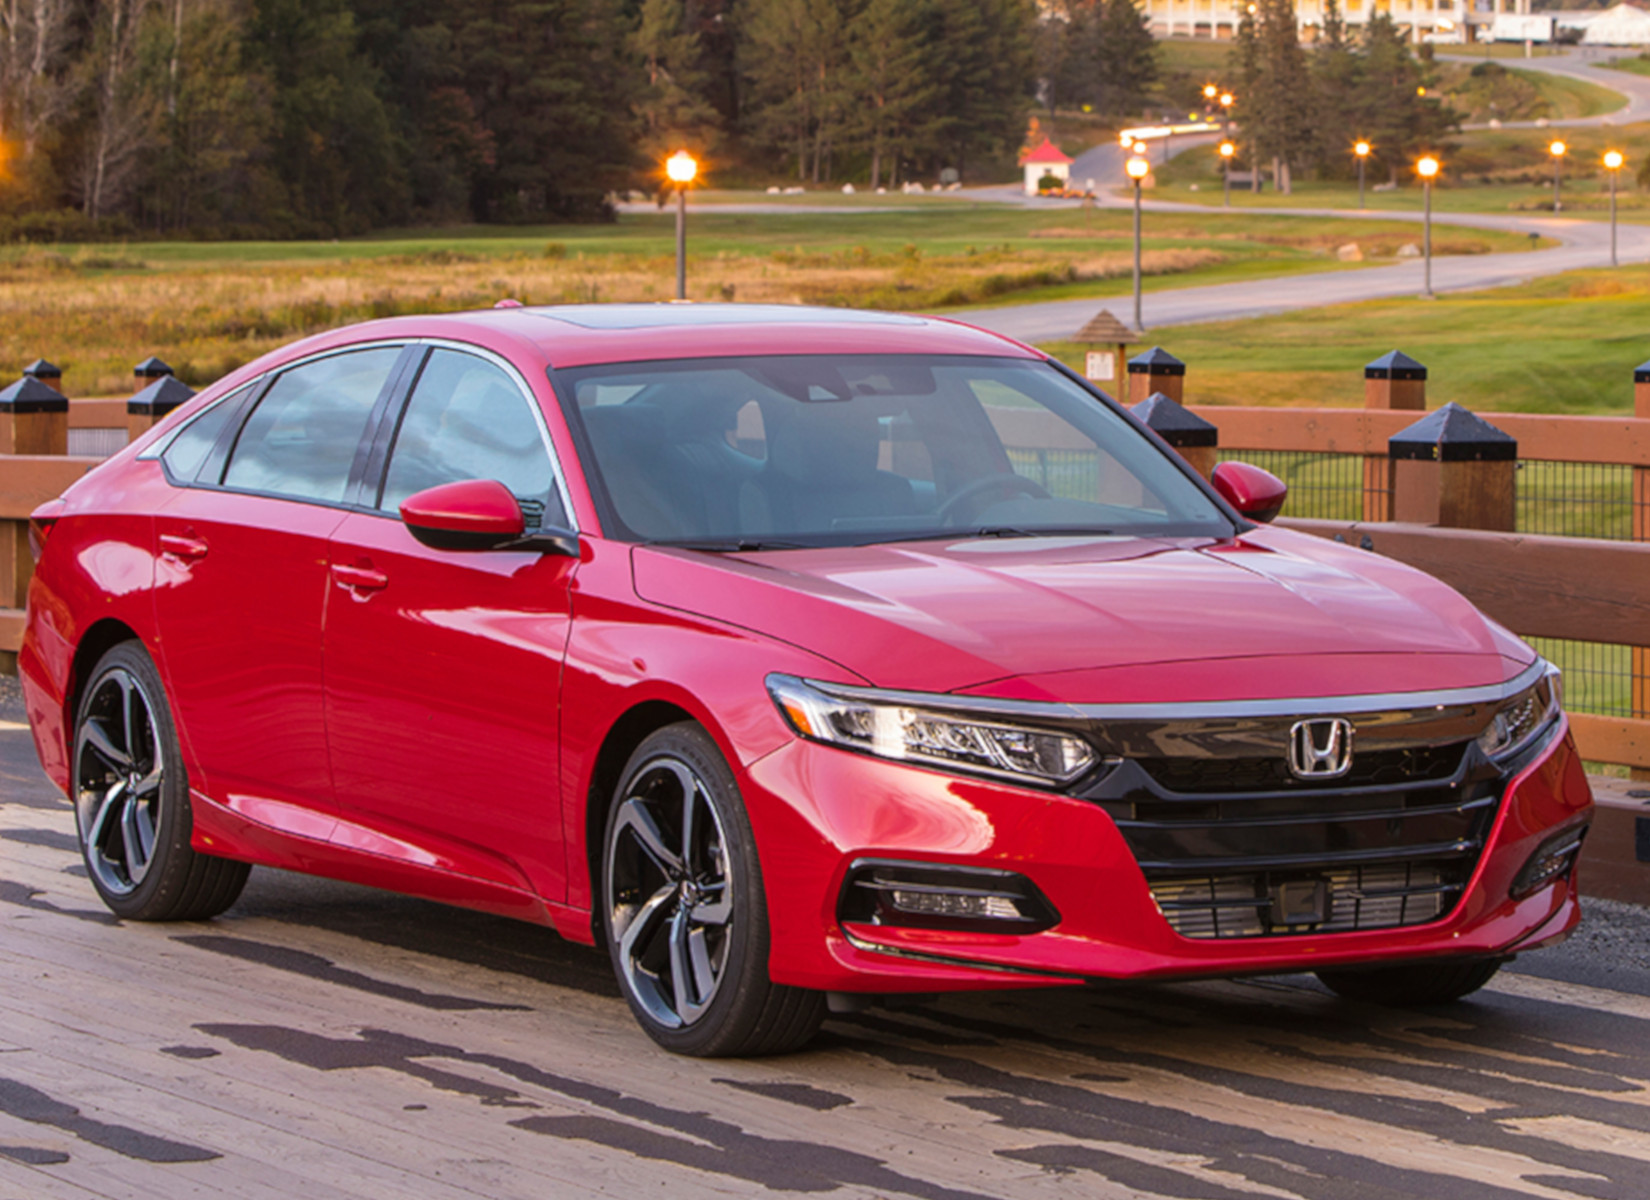 The 2019 Honda Accord comes with the latest safety features